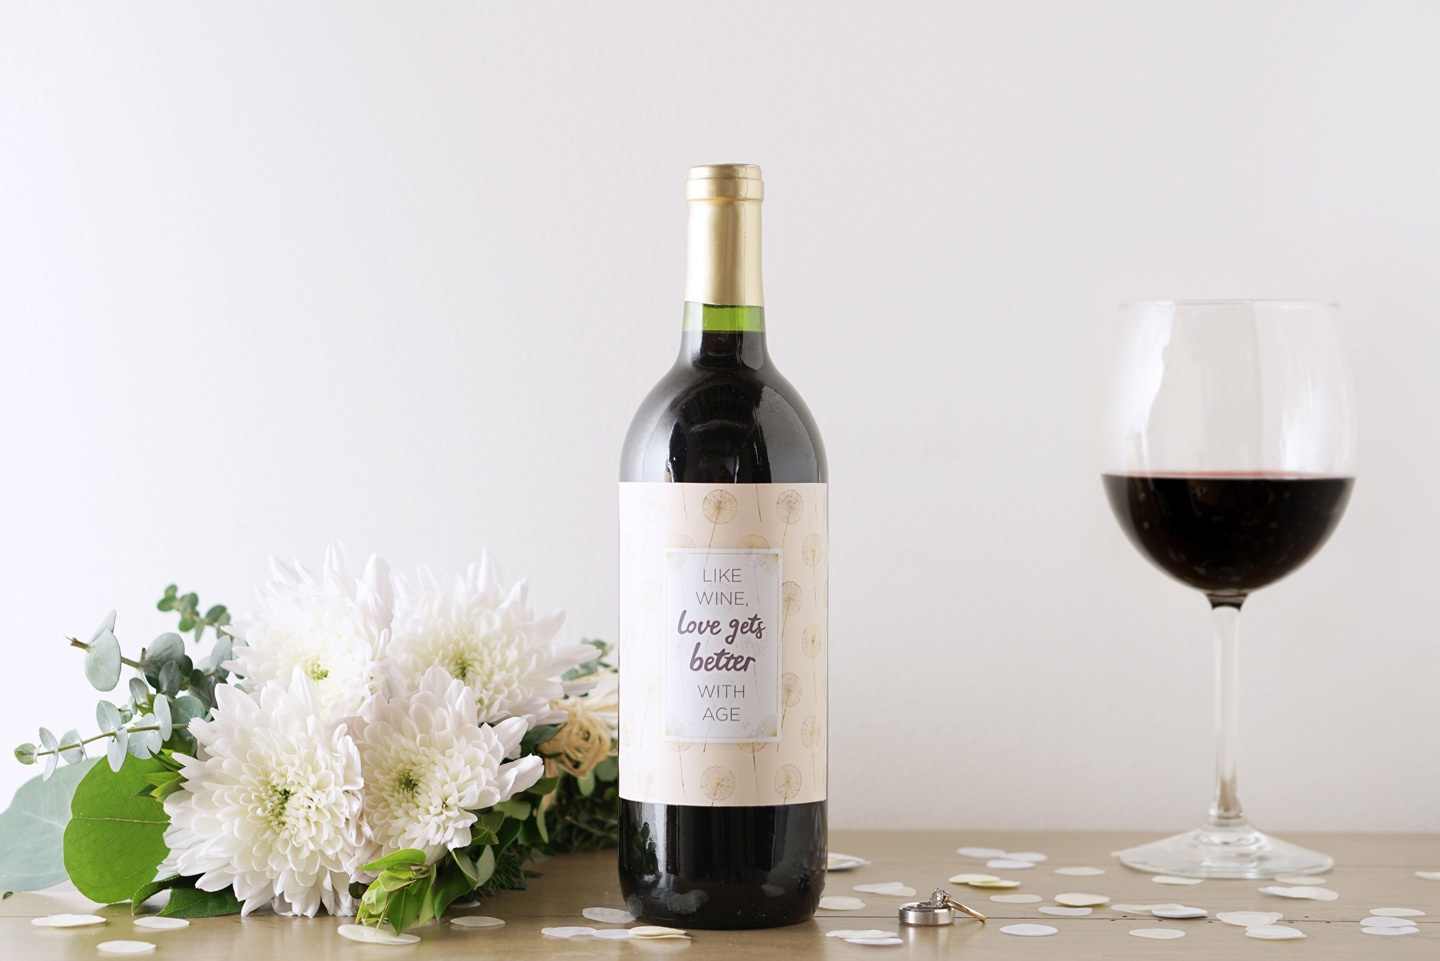 6 Printable Wine Bottle Labels For Special Occasions - Ftd - Free Printable Wine Labels For Birthday